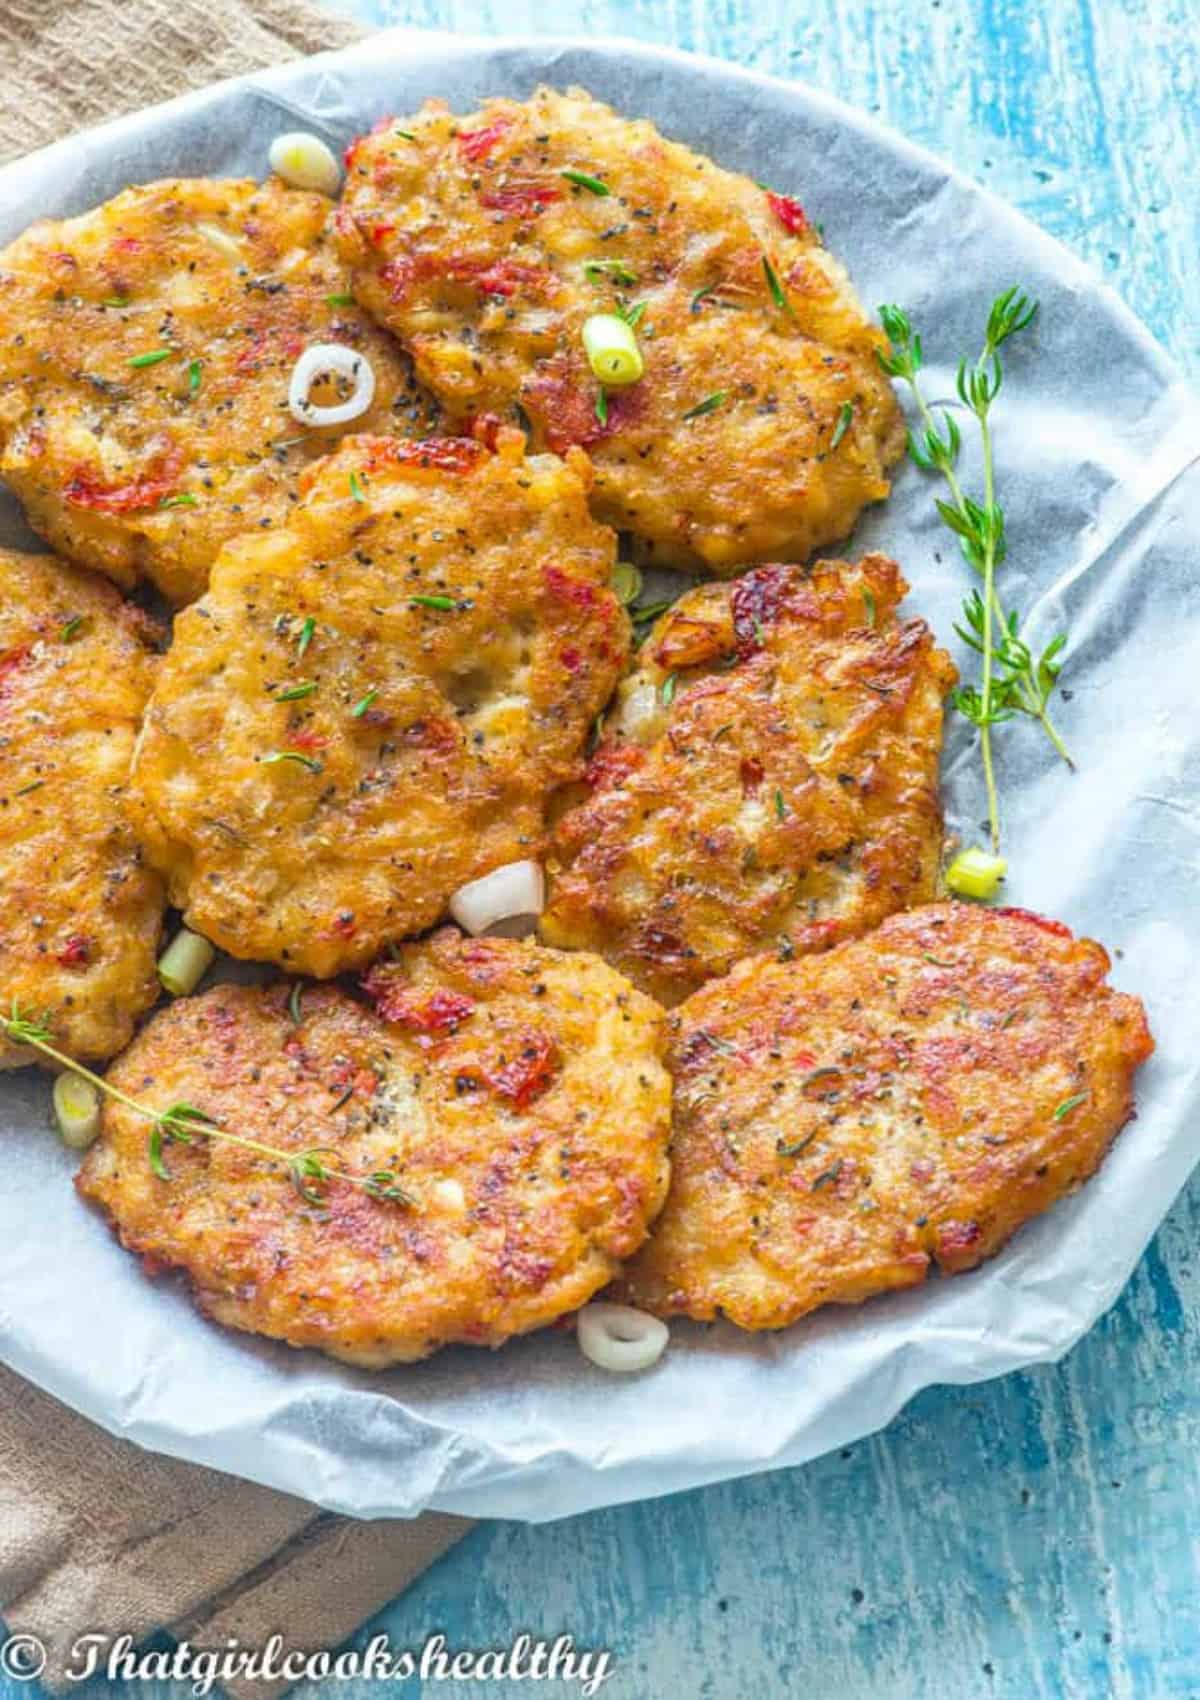 seven fritters on a plate